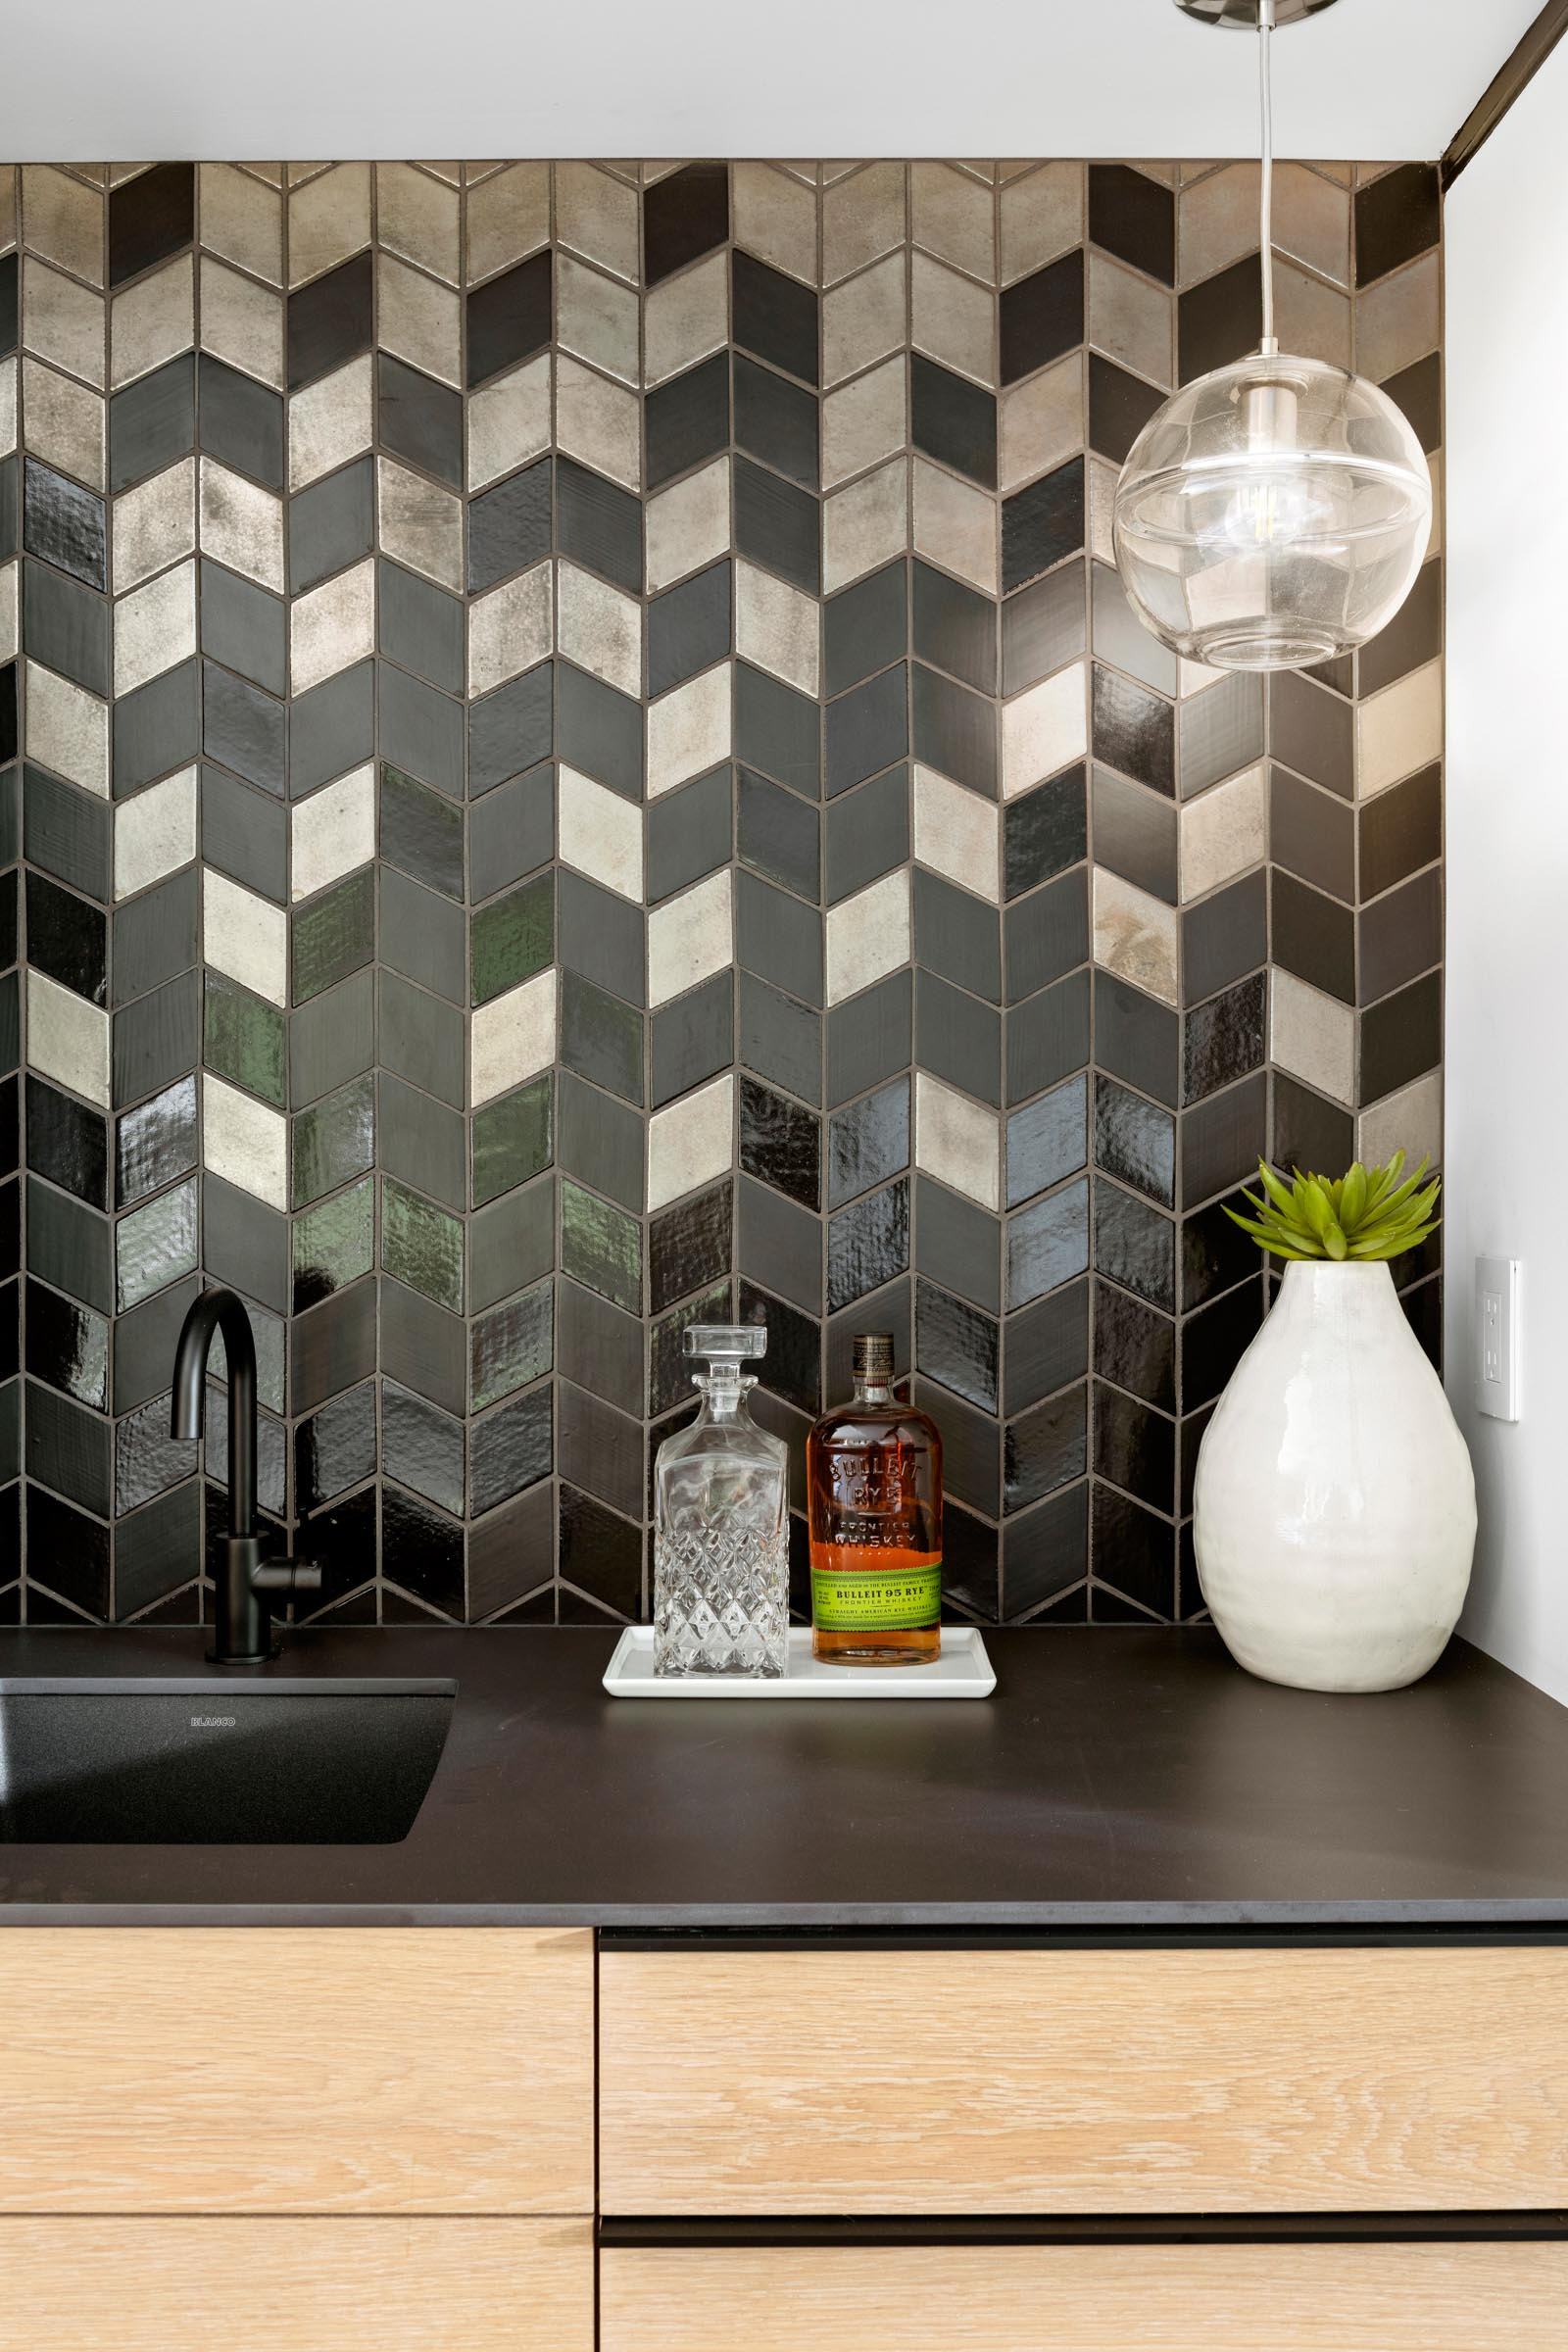 A modern bar area with a matte and glossy tiled wall that matches the black countertop.